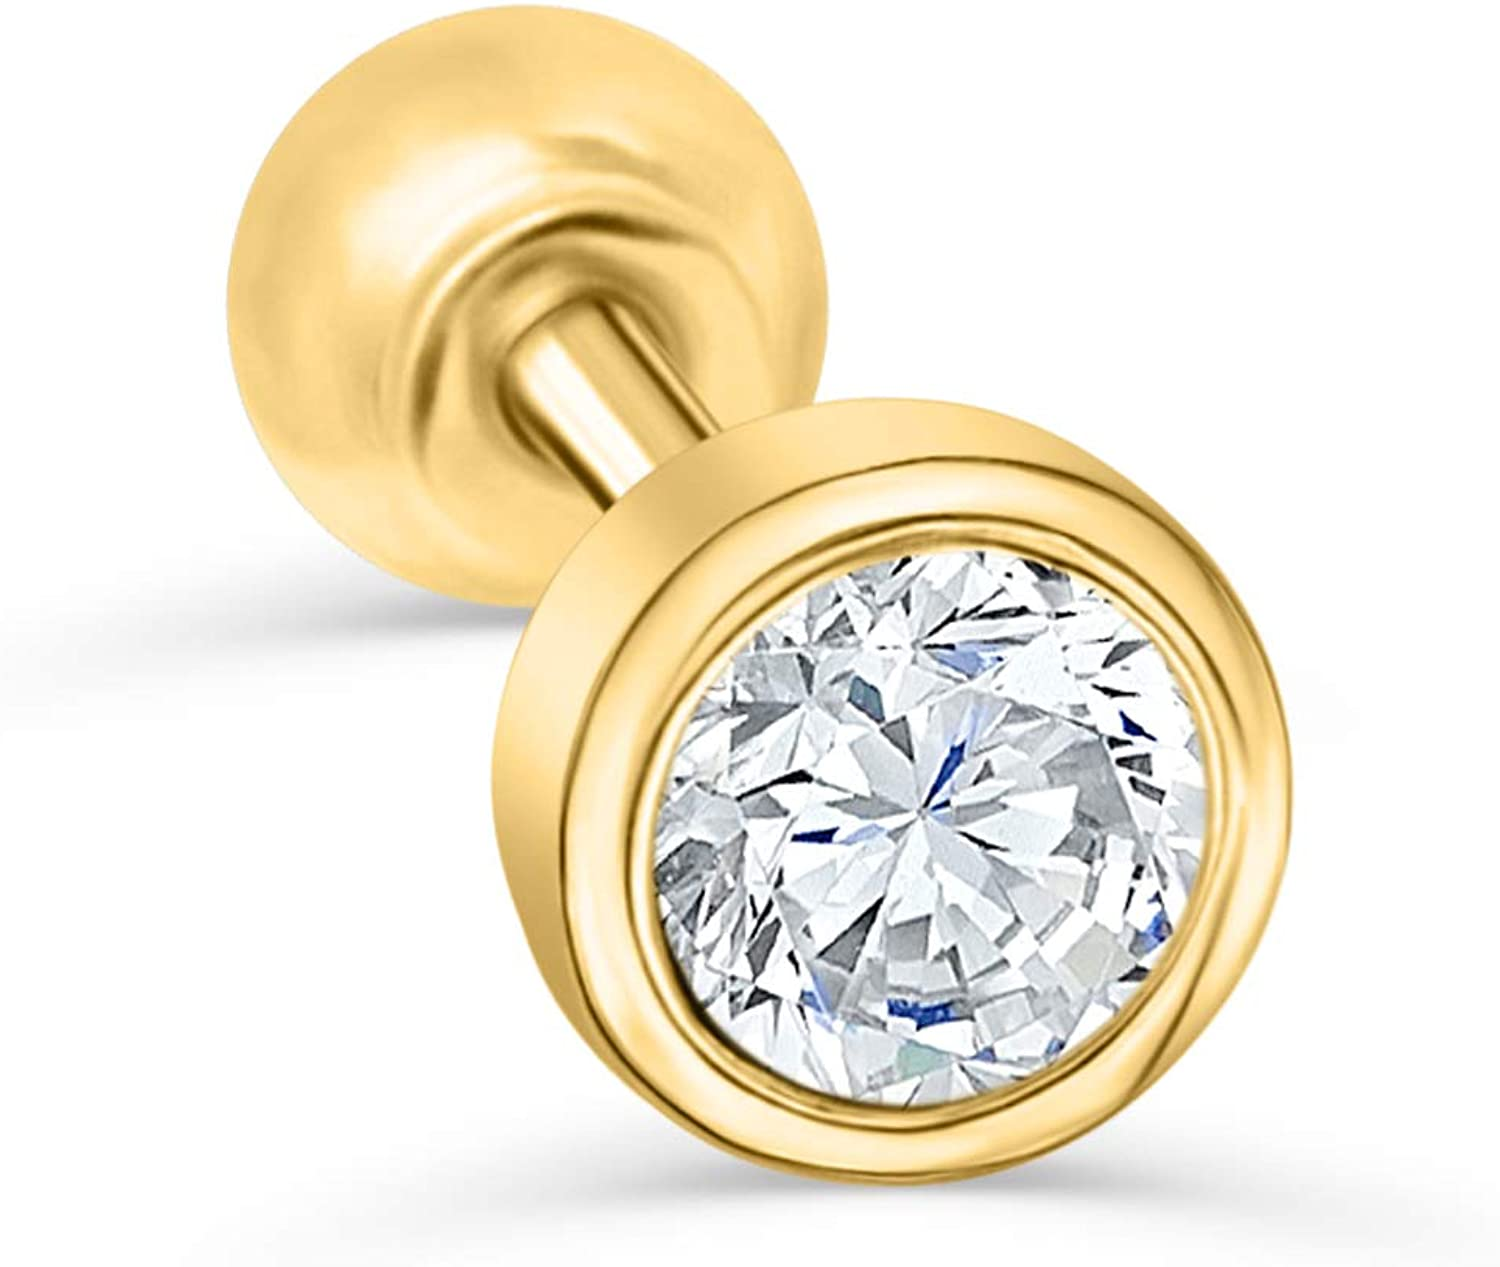 14K 10K Solid Yellow Gold free shipping Jewelry 2 Max 59% OFF Ba Tiny Round Small 4mm 3 Cz